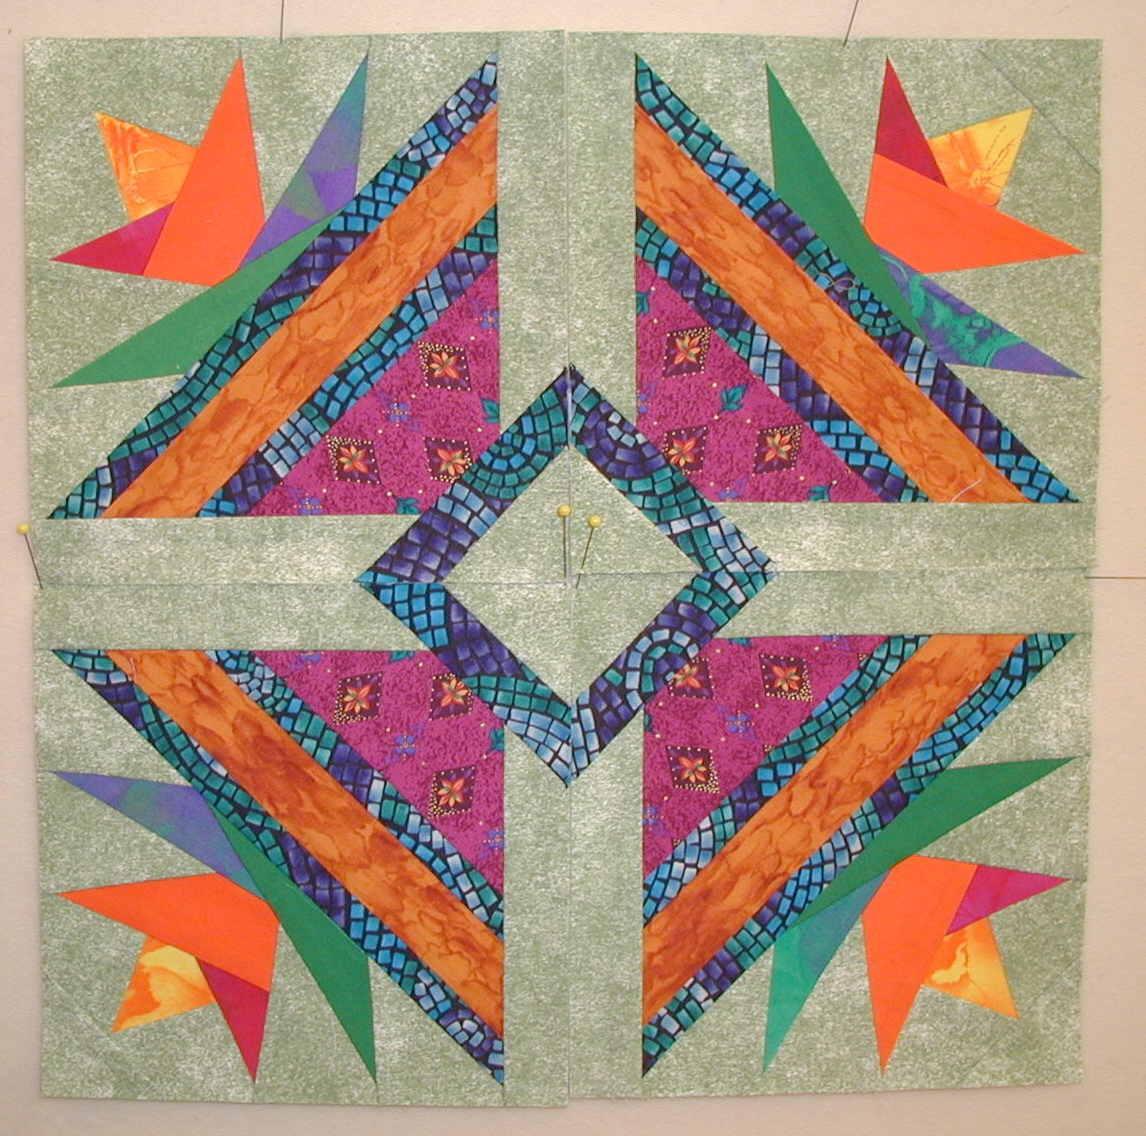 Quilting Designs On Paper : Moonbear Longarm Quilting: Design Wall Monday 04.30.12